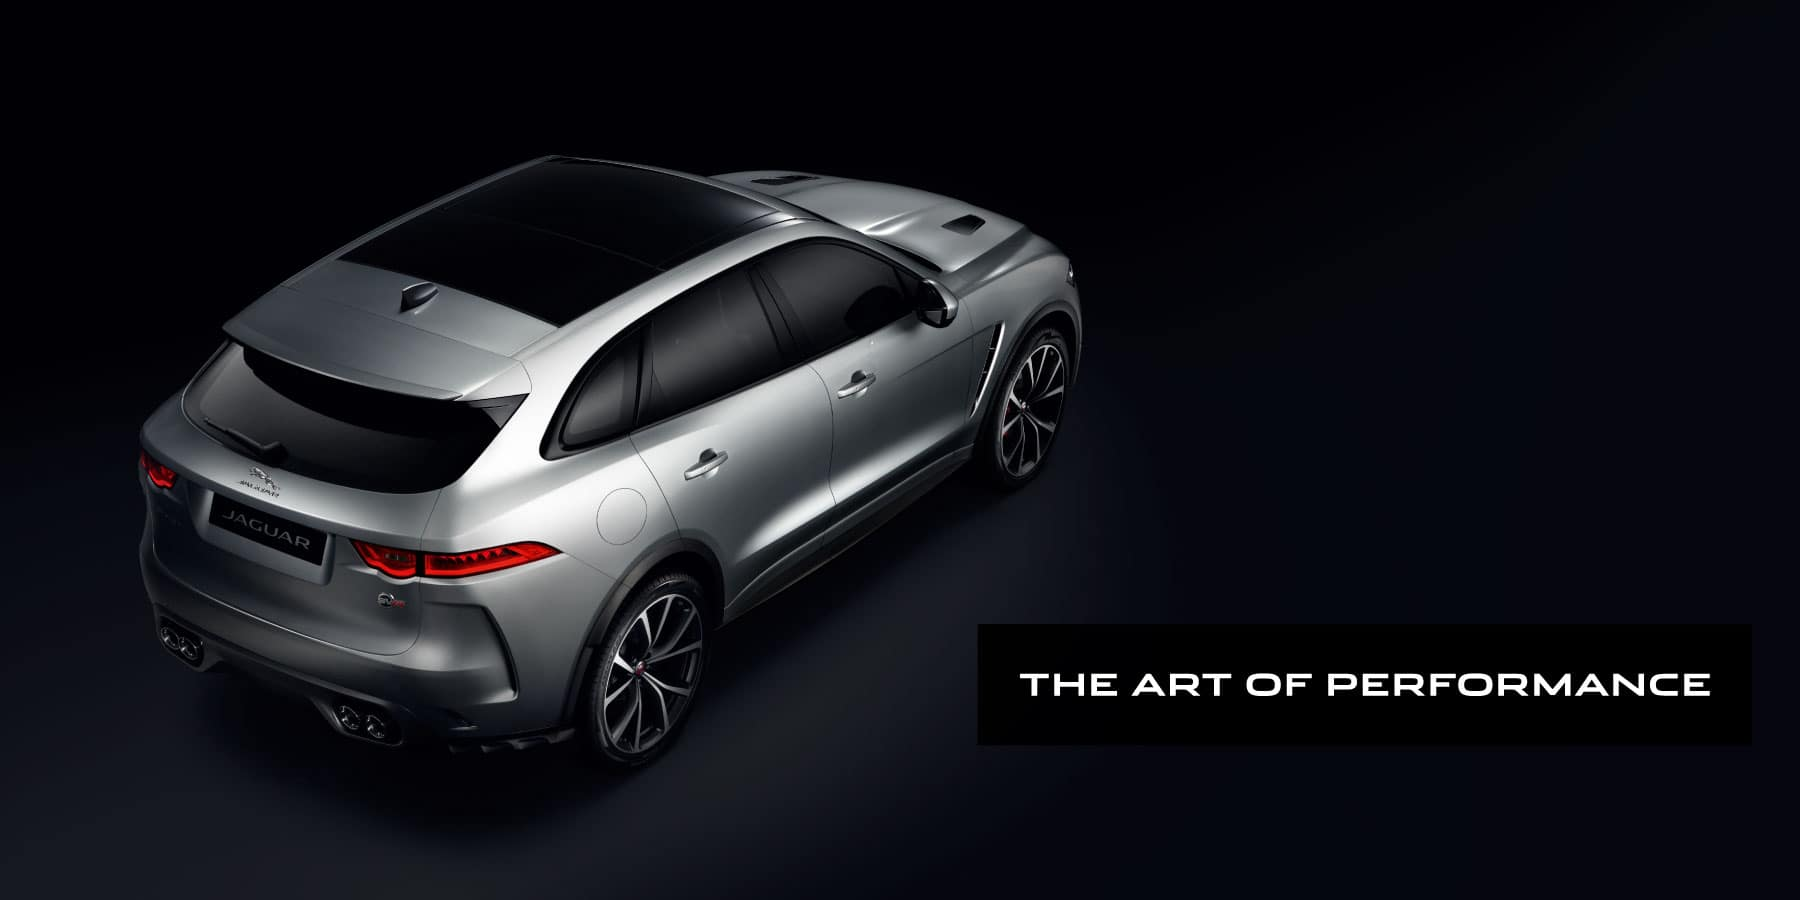 Autobahn Jaguar Fort Worth | 2020 Jaguar F-PACE SVR